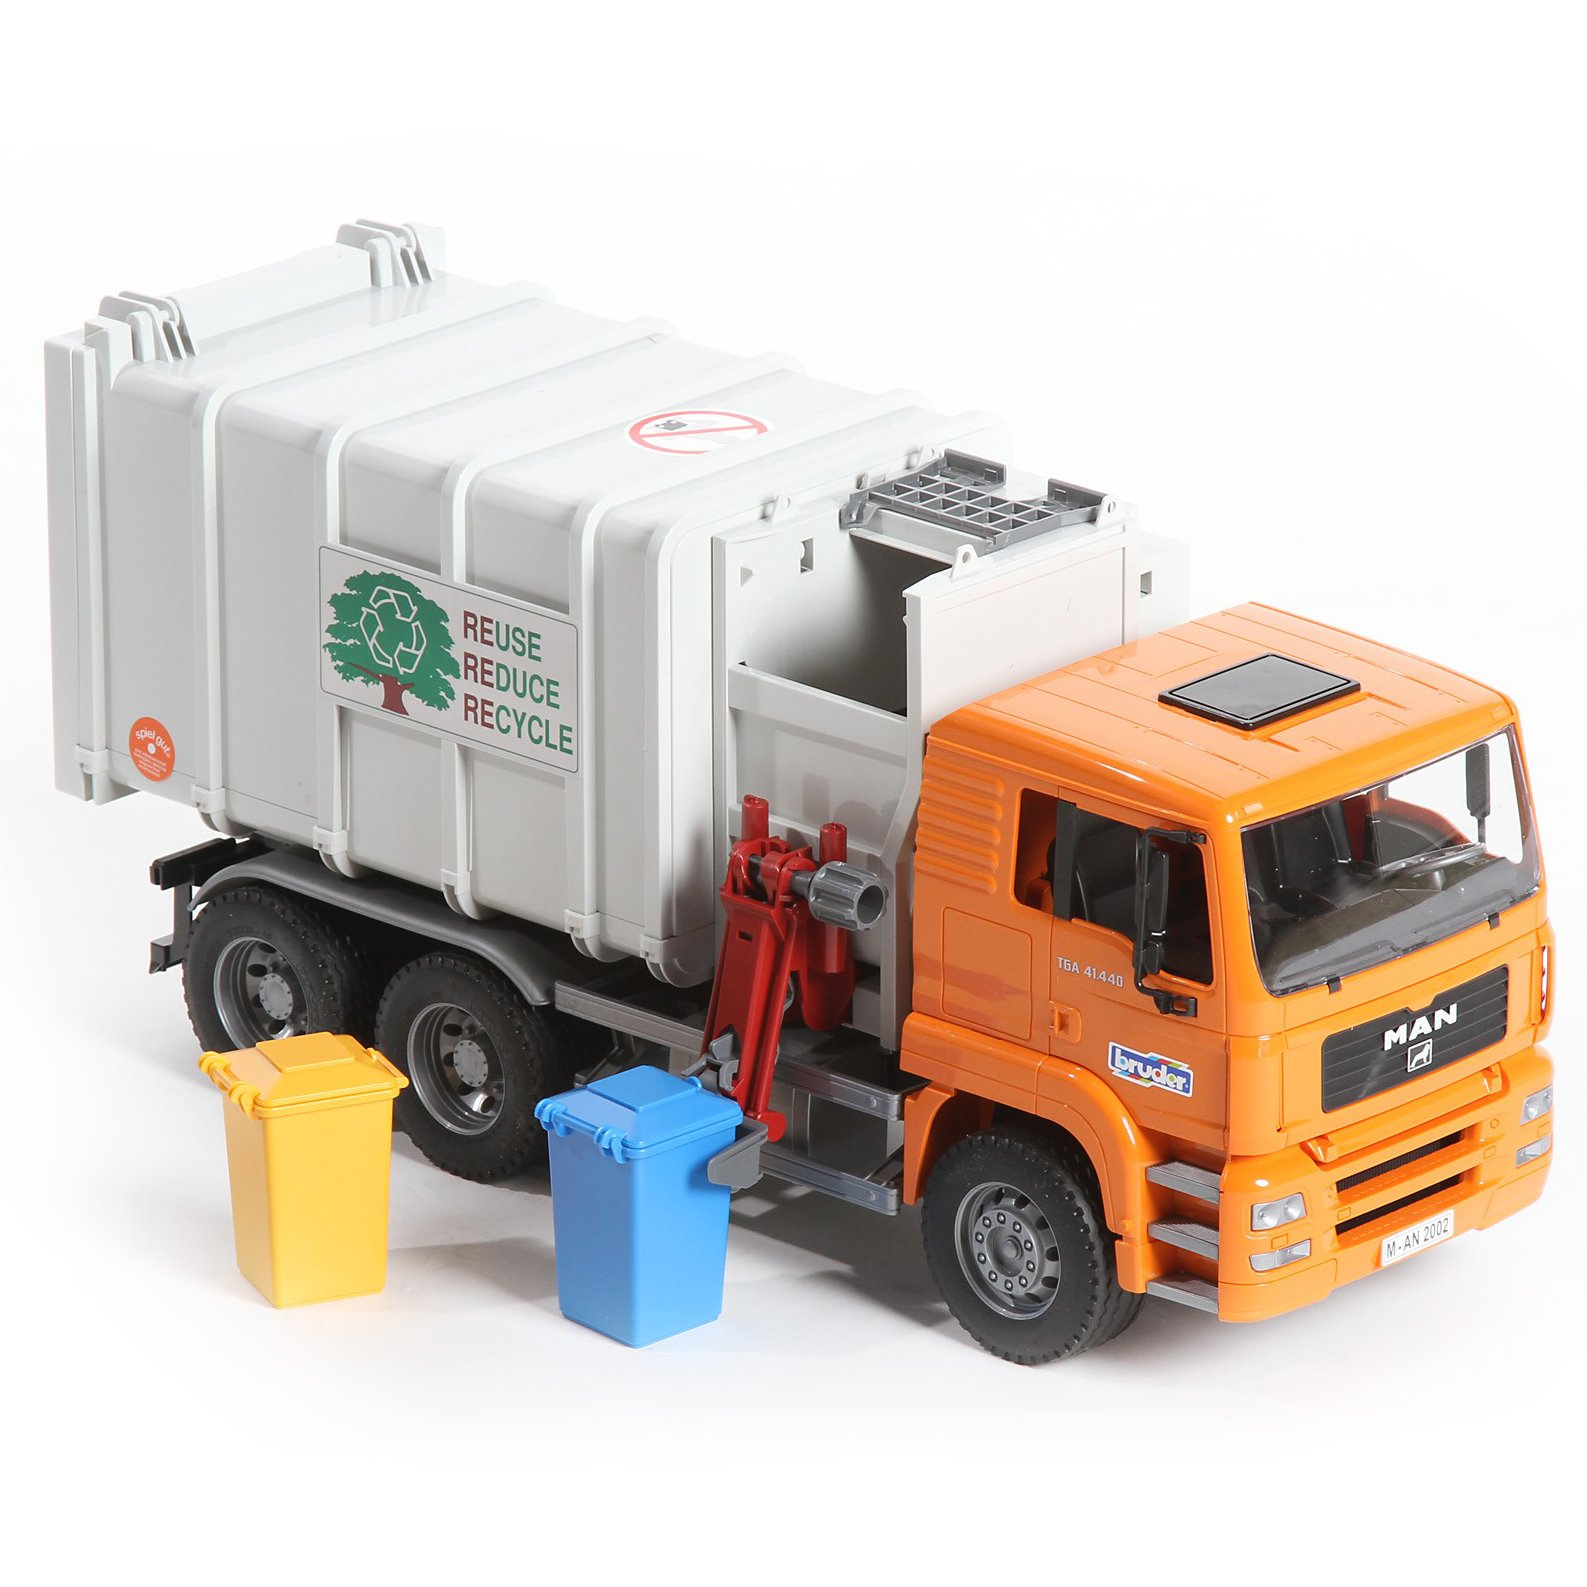 Bruder Toys MAN Side-Loading Garbage Truck with 2 Refuse Bins 02761-BR